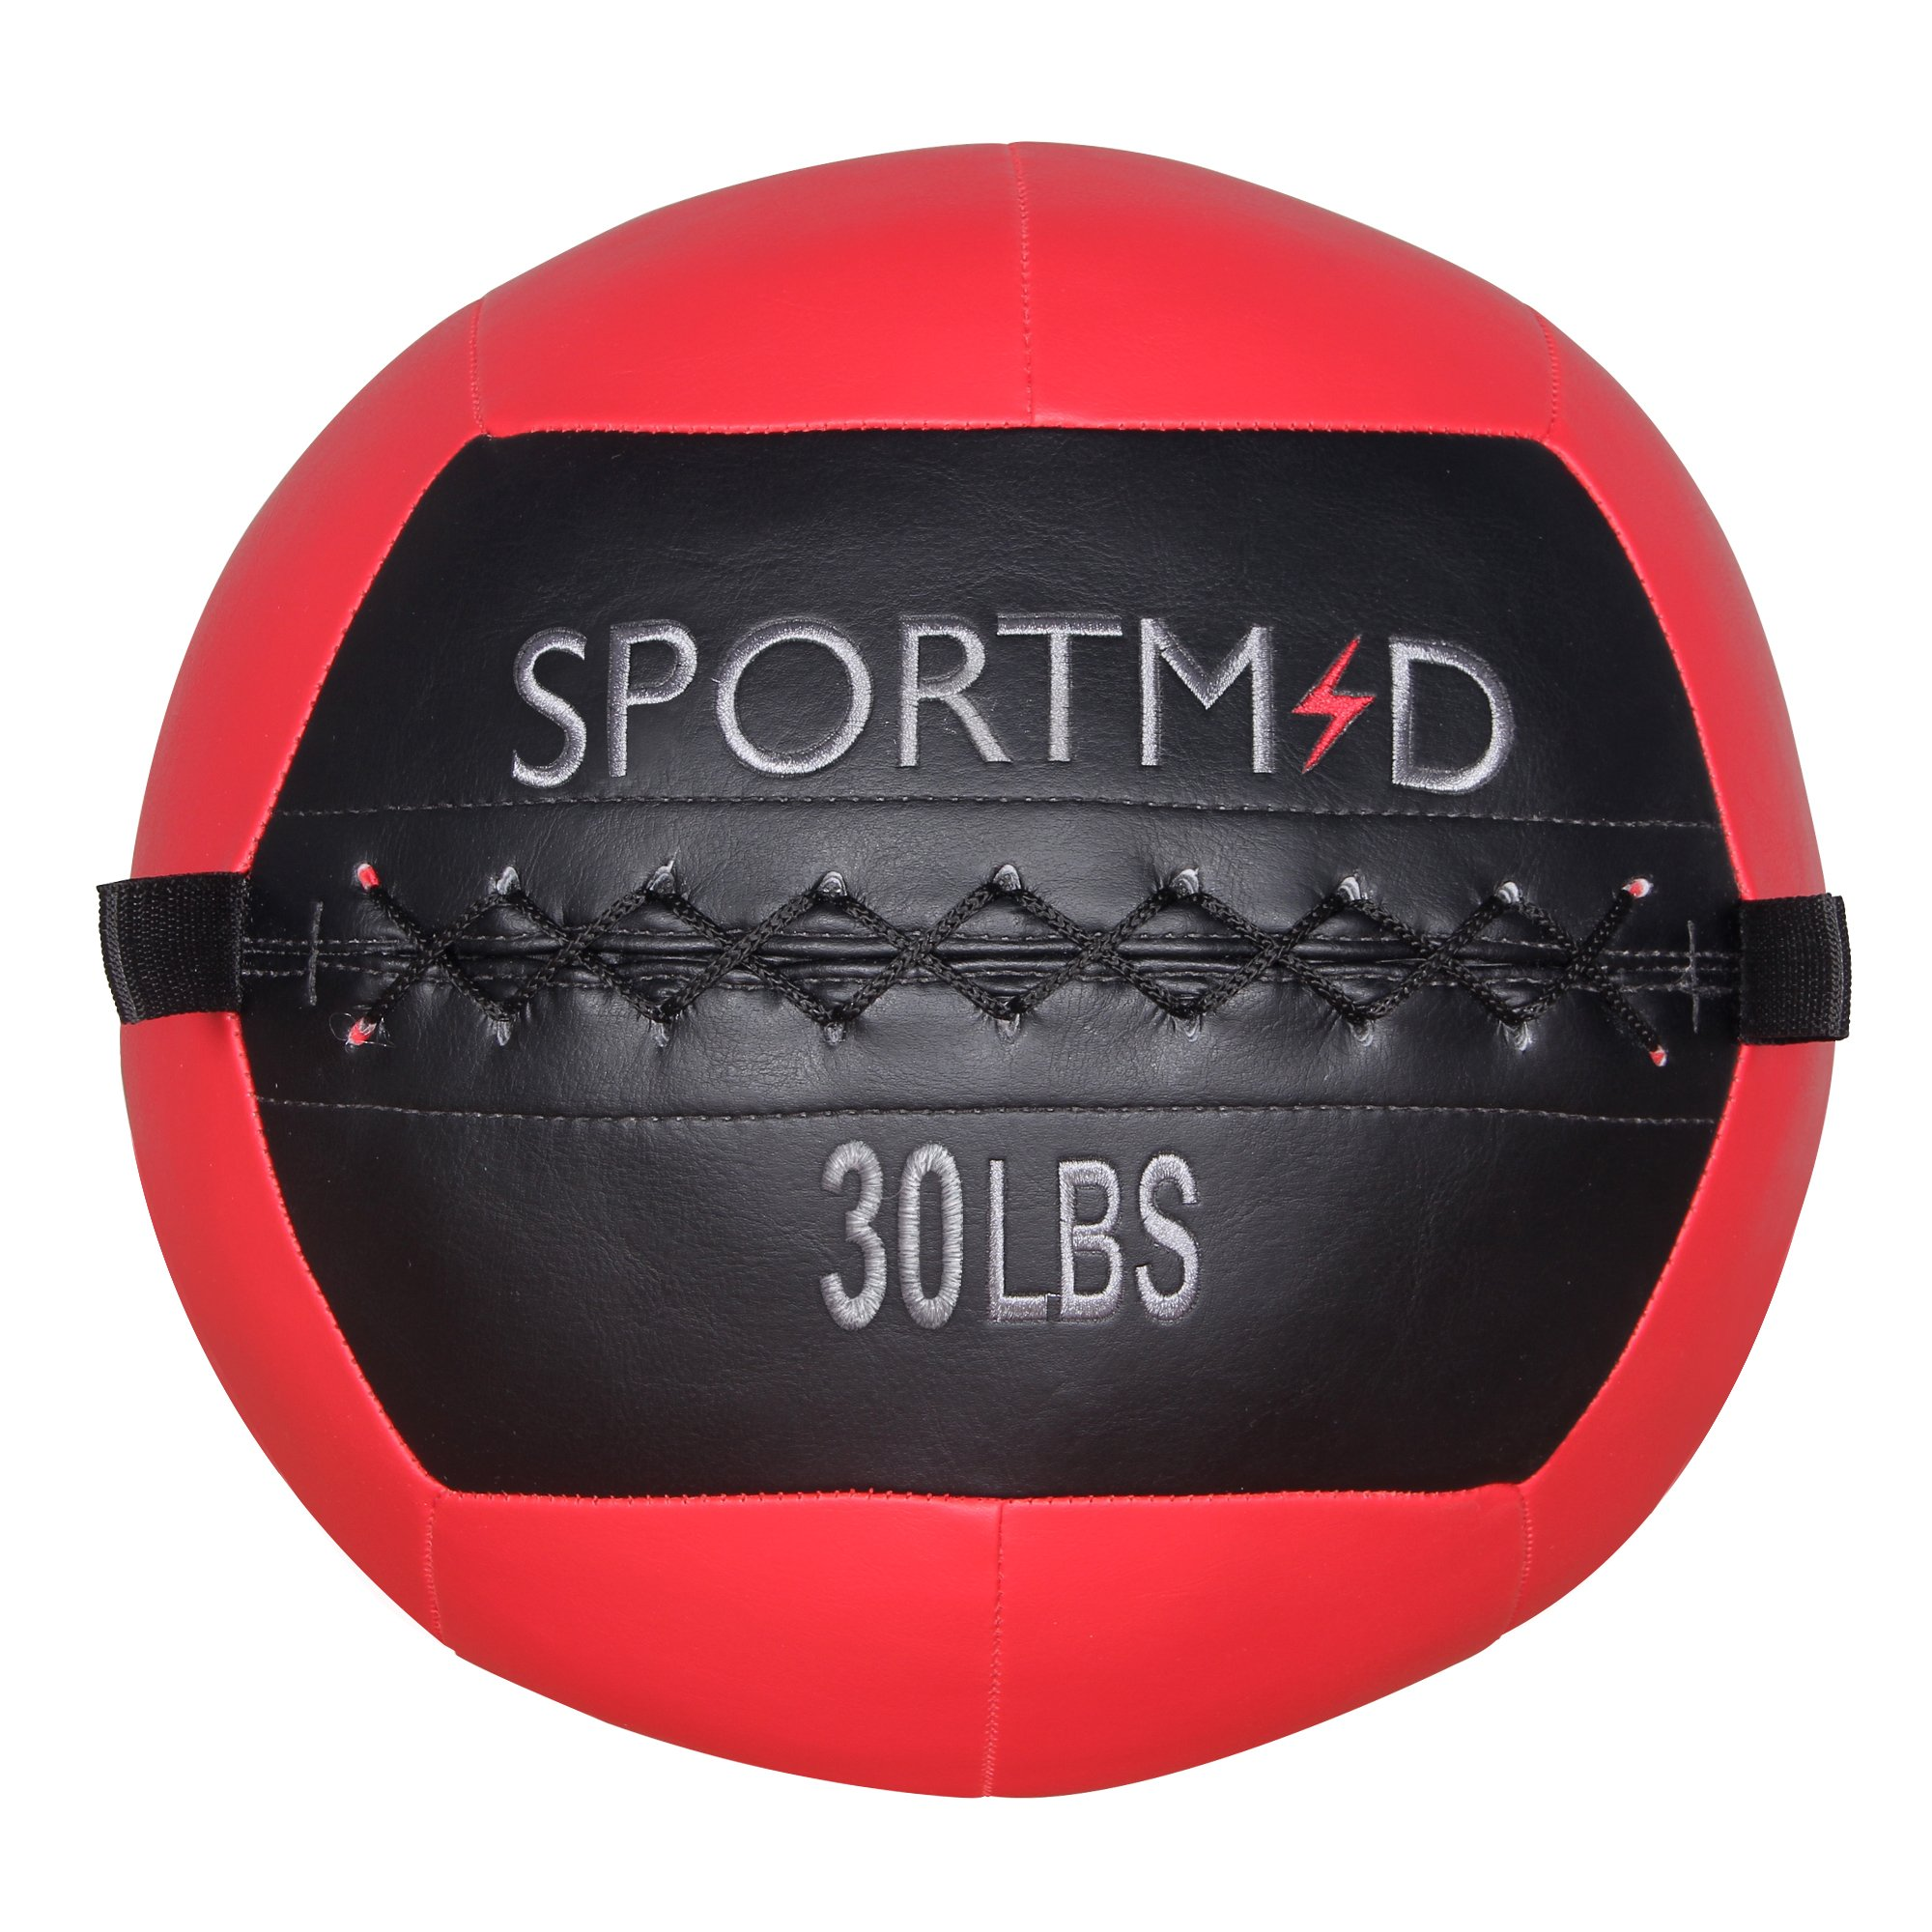 Sportmad Medicine Ball Soft Wall Ball Weight Ball for CrossFit Exercises Strength Training Cardio Workouts Muscle Building Balance Red 30 LBS